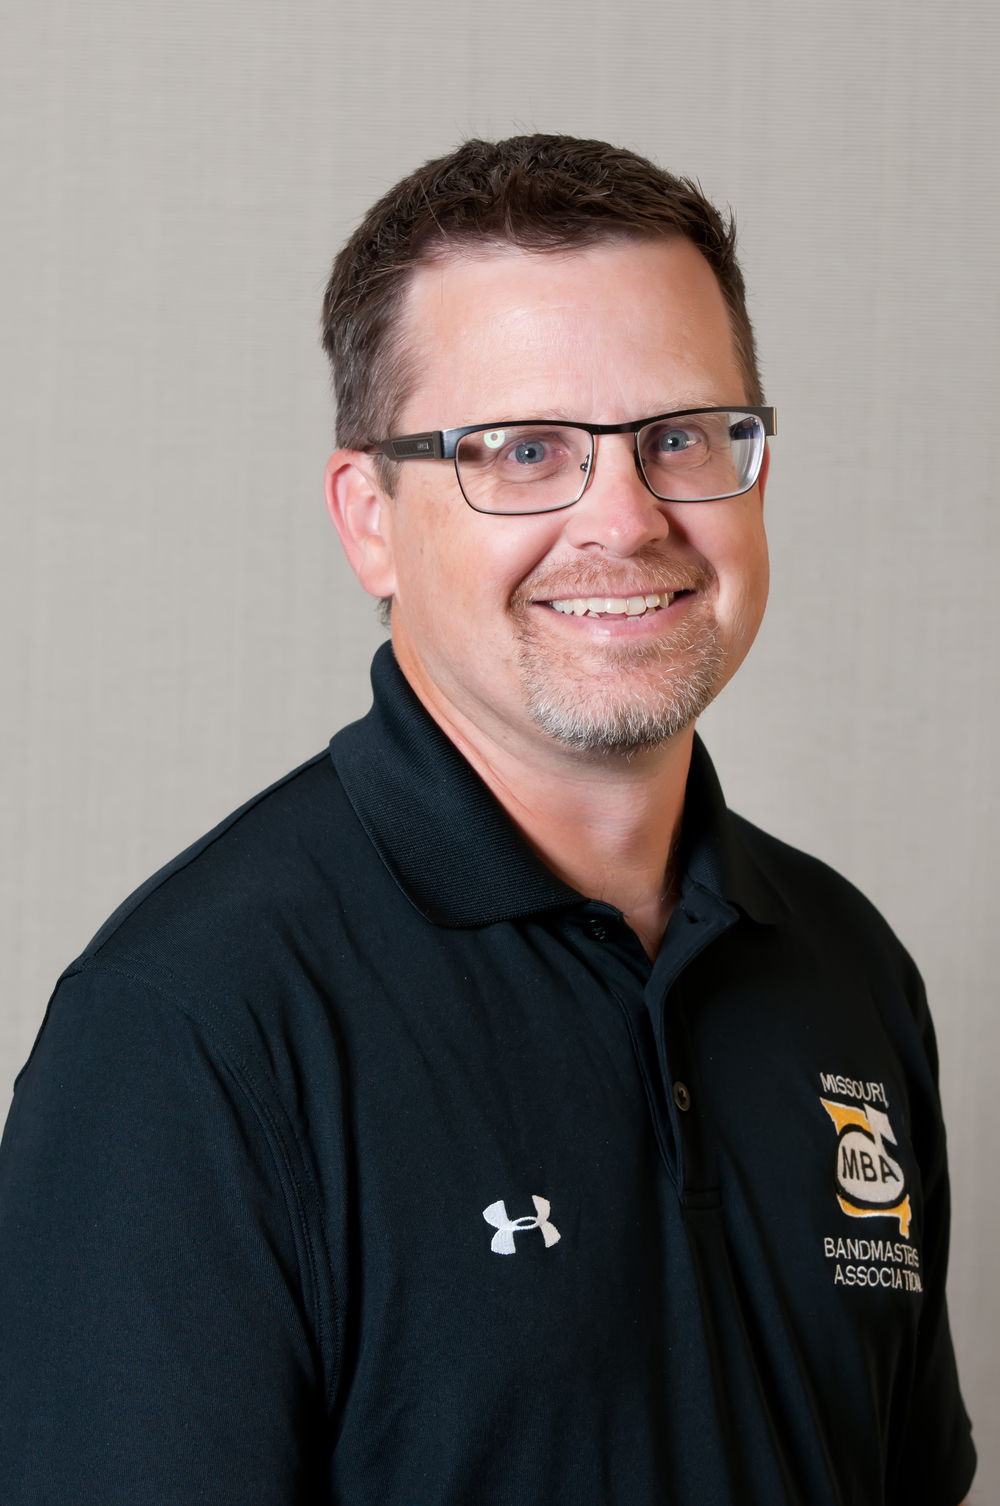 Dennis Swope  Mr. Swope is the director of bands at Hickman High School. To contact Mr. Swope, email at  DSwope@CPSk12.org  or call the school at 573-214-3000